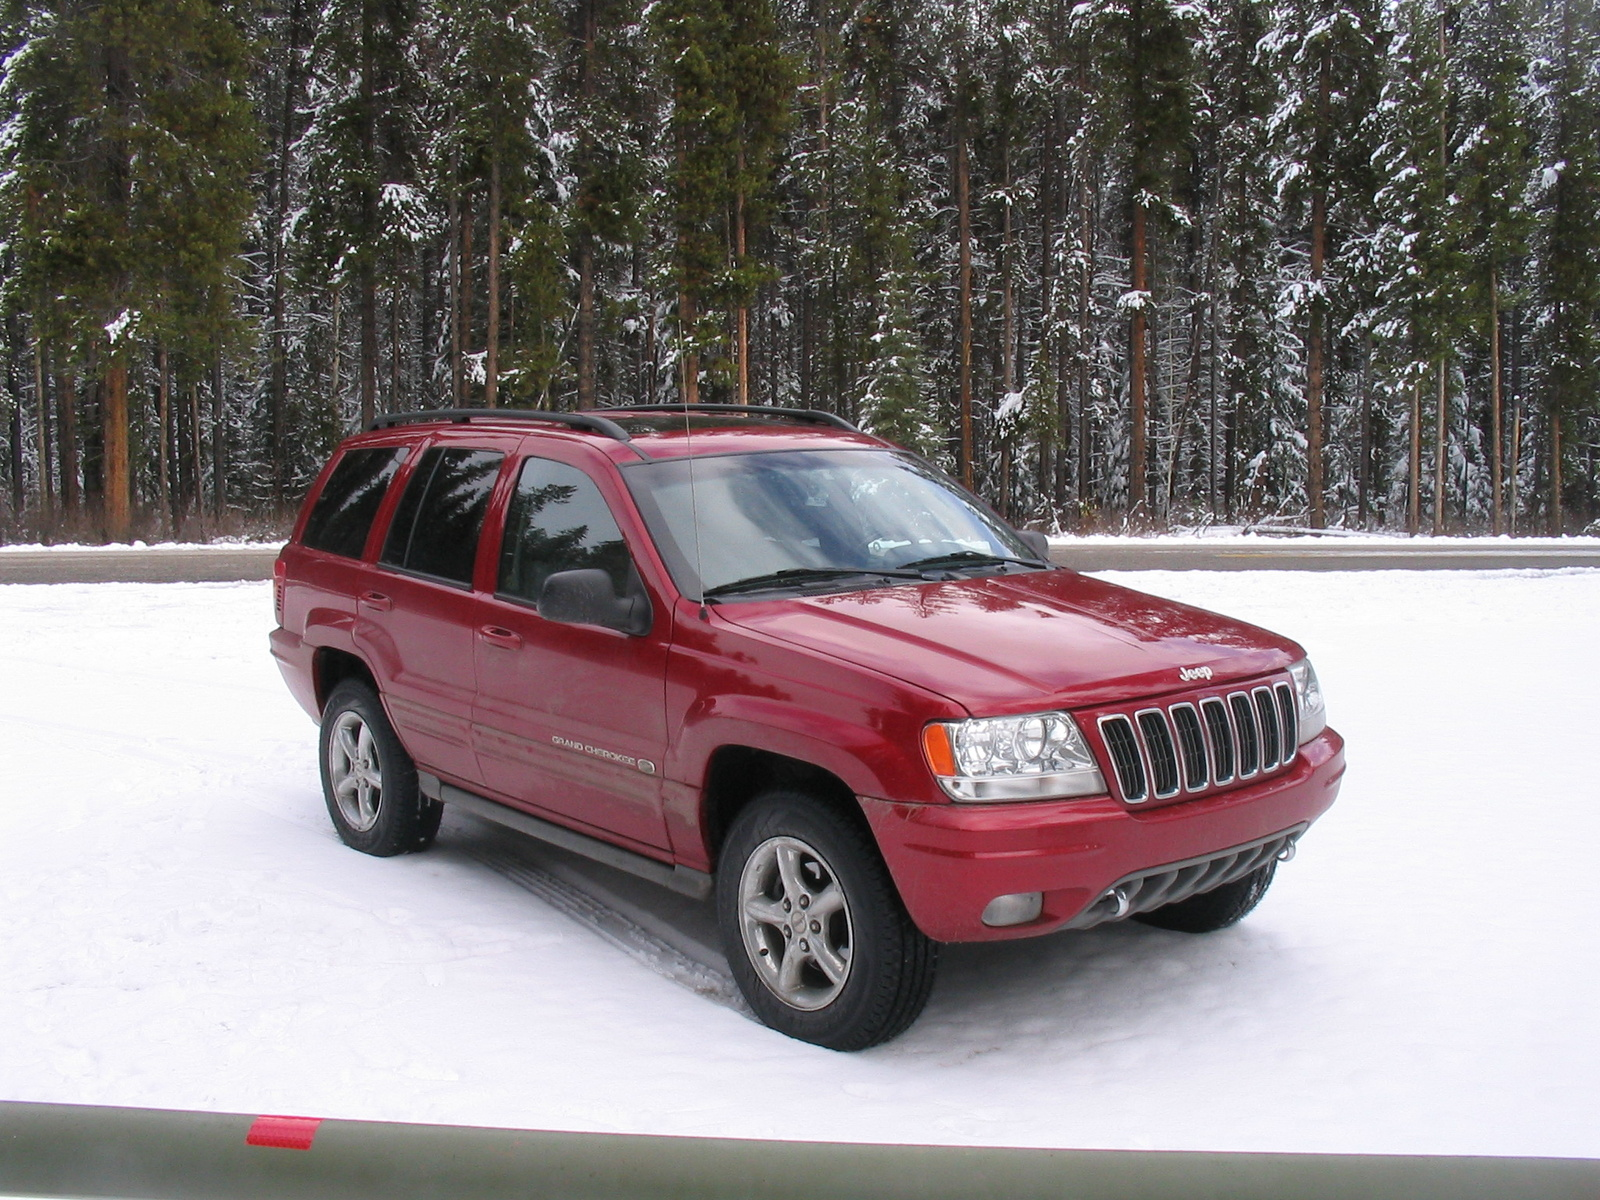 2002 Jeep Grand Cherokee Overland picture